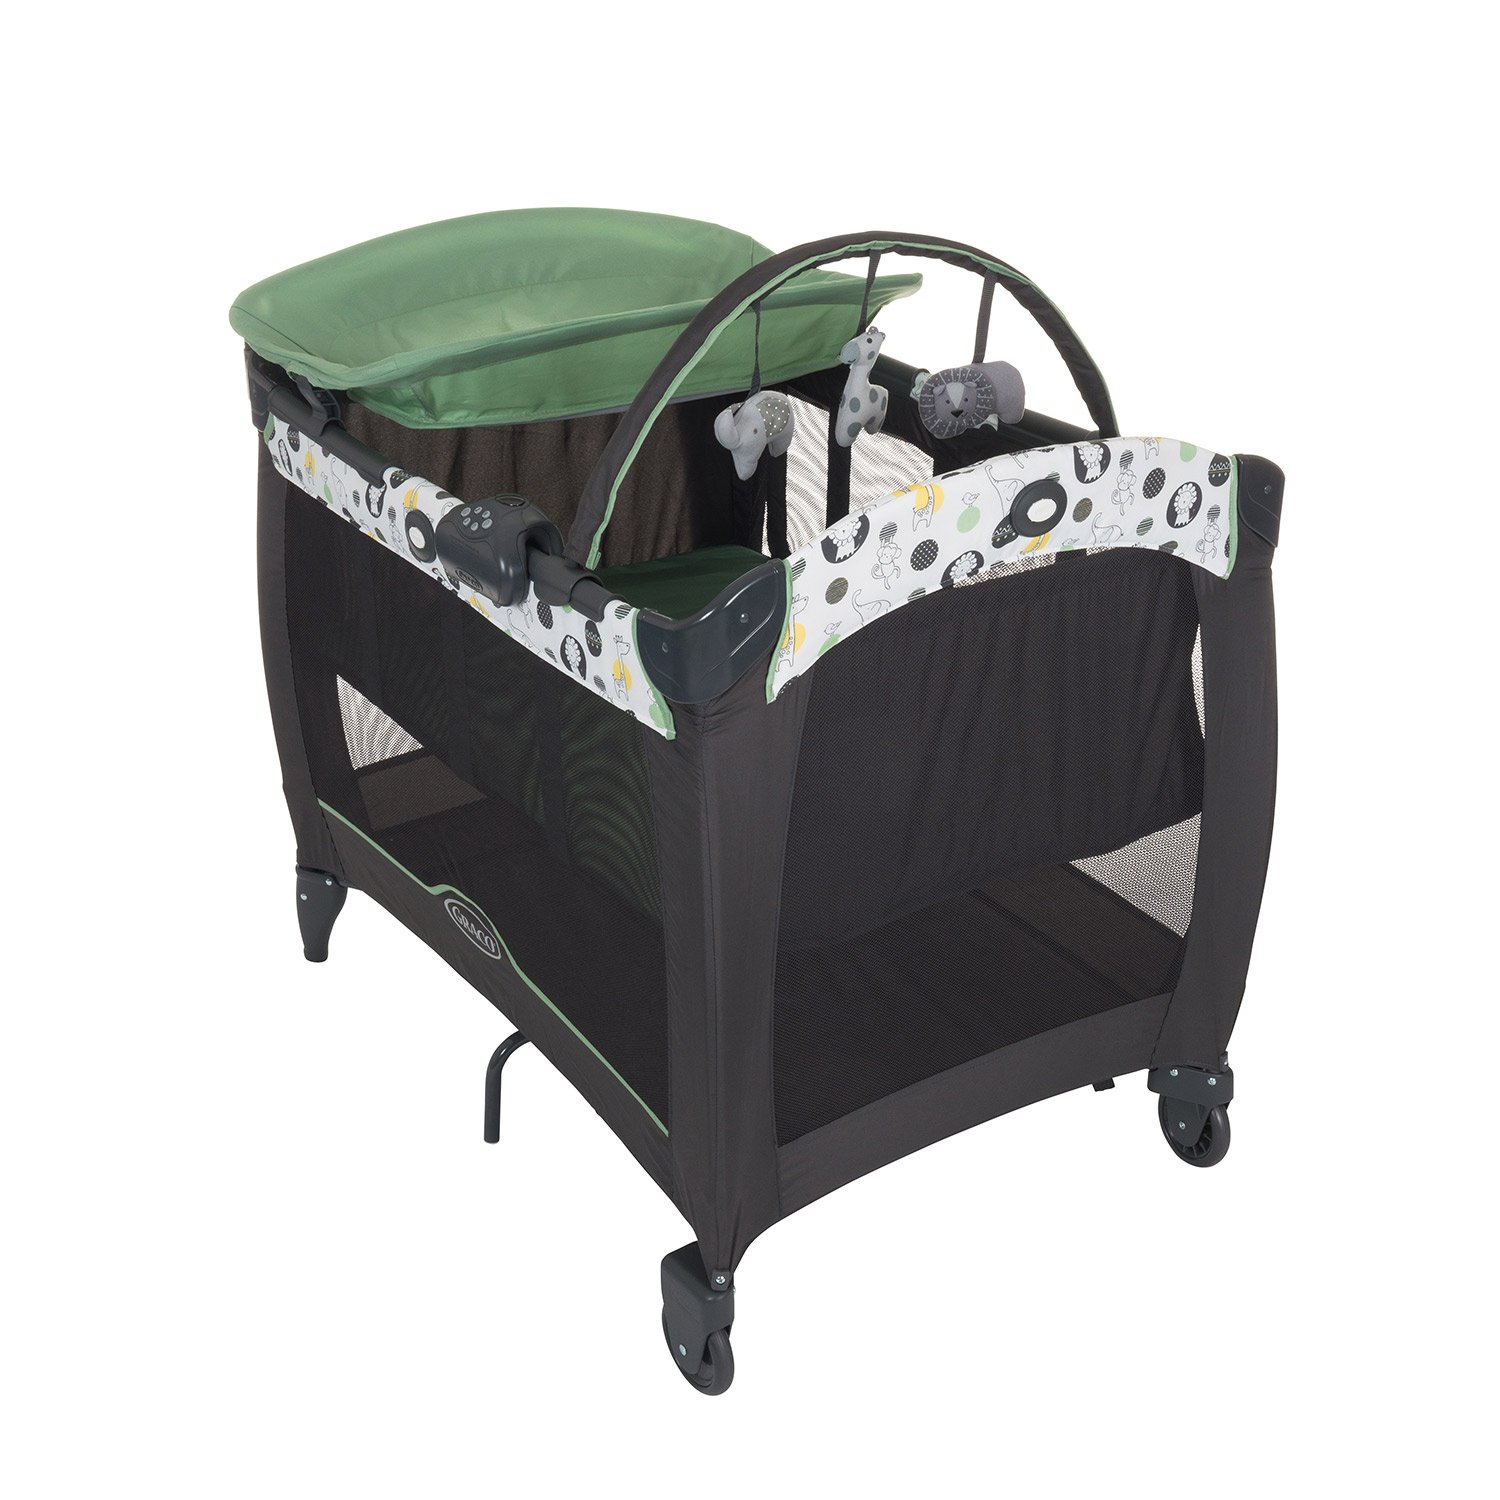 Graco Contour Electra Travel Cot, Balancing Act Newell Rubbermaid 2045288